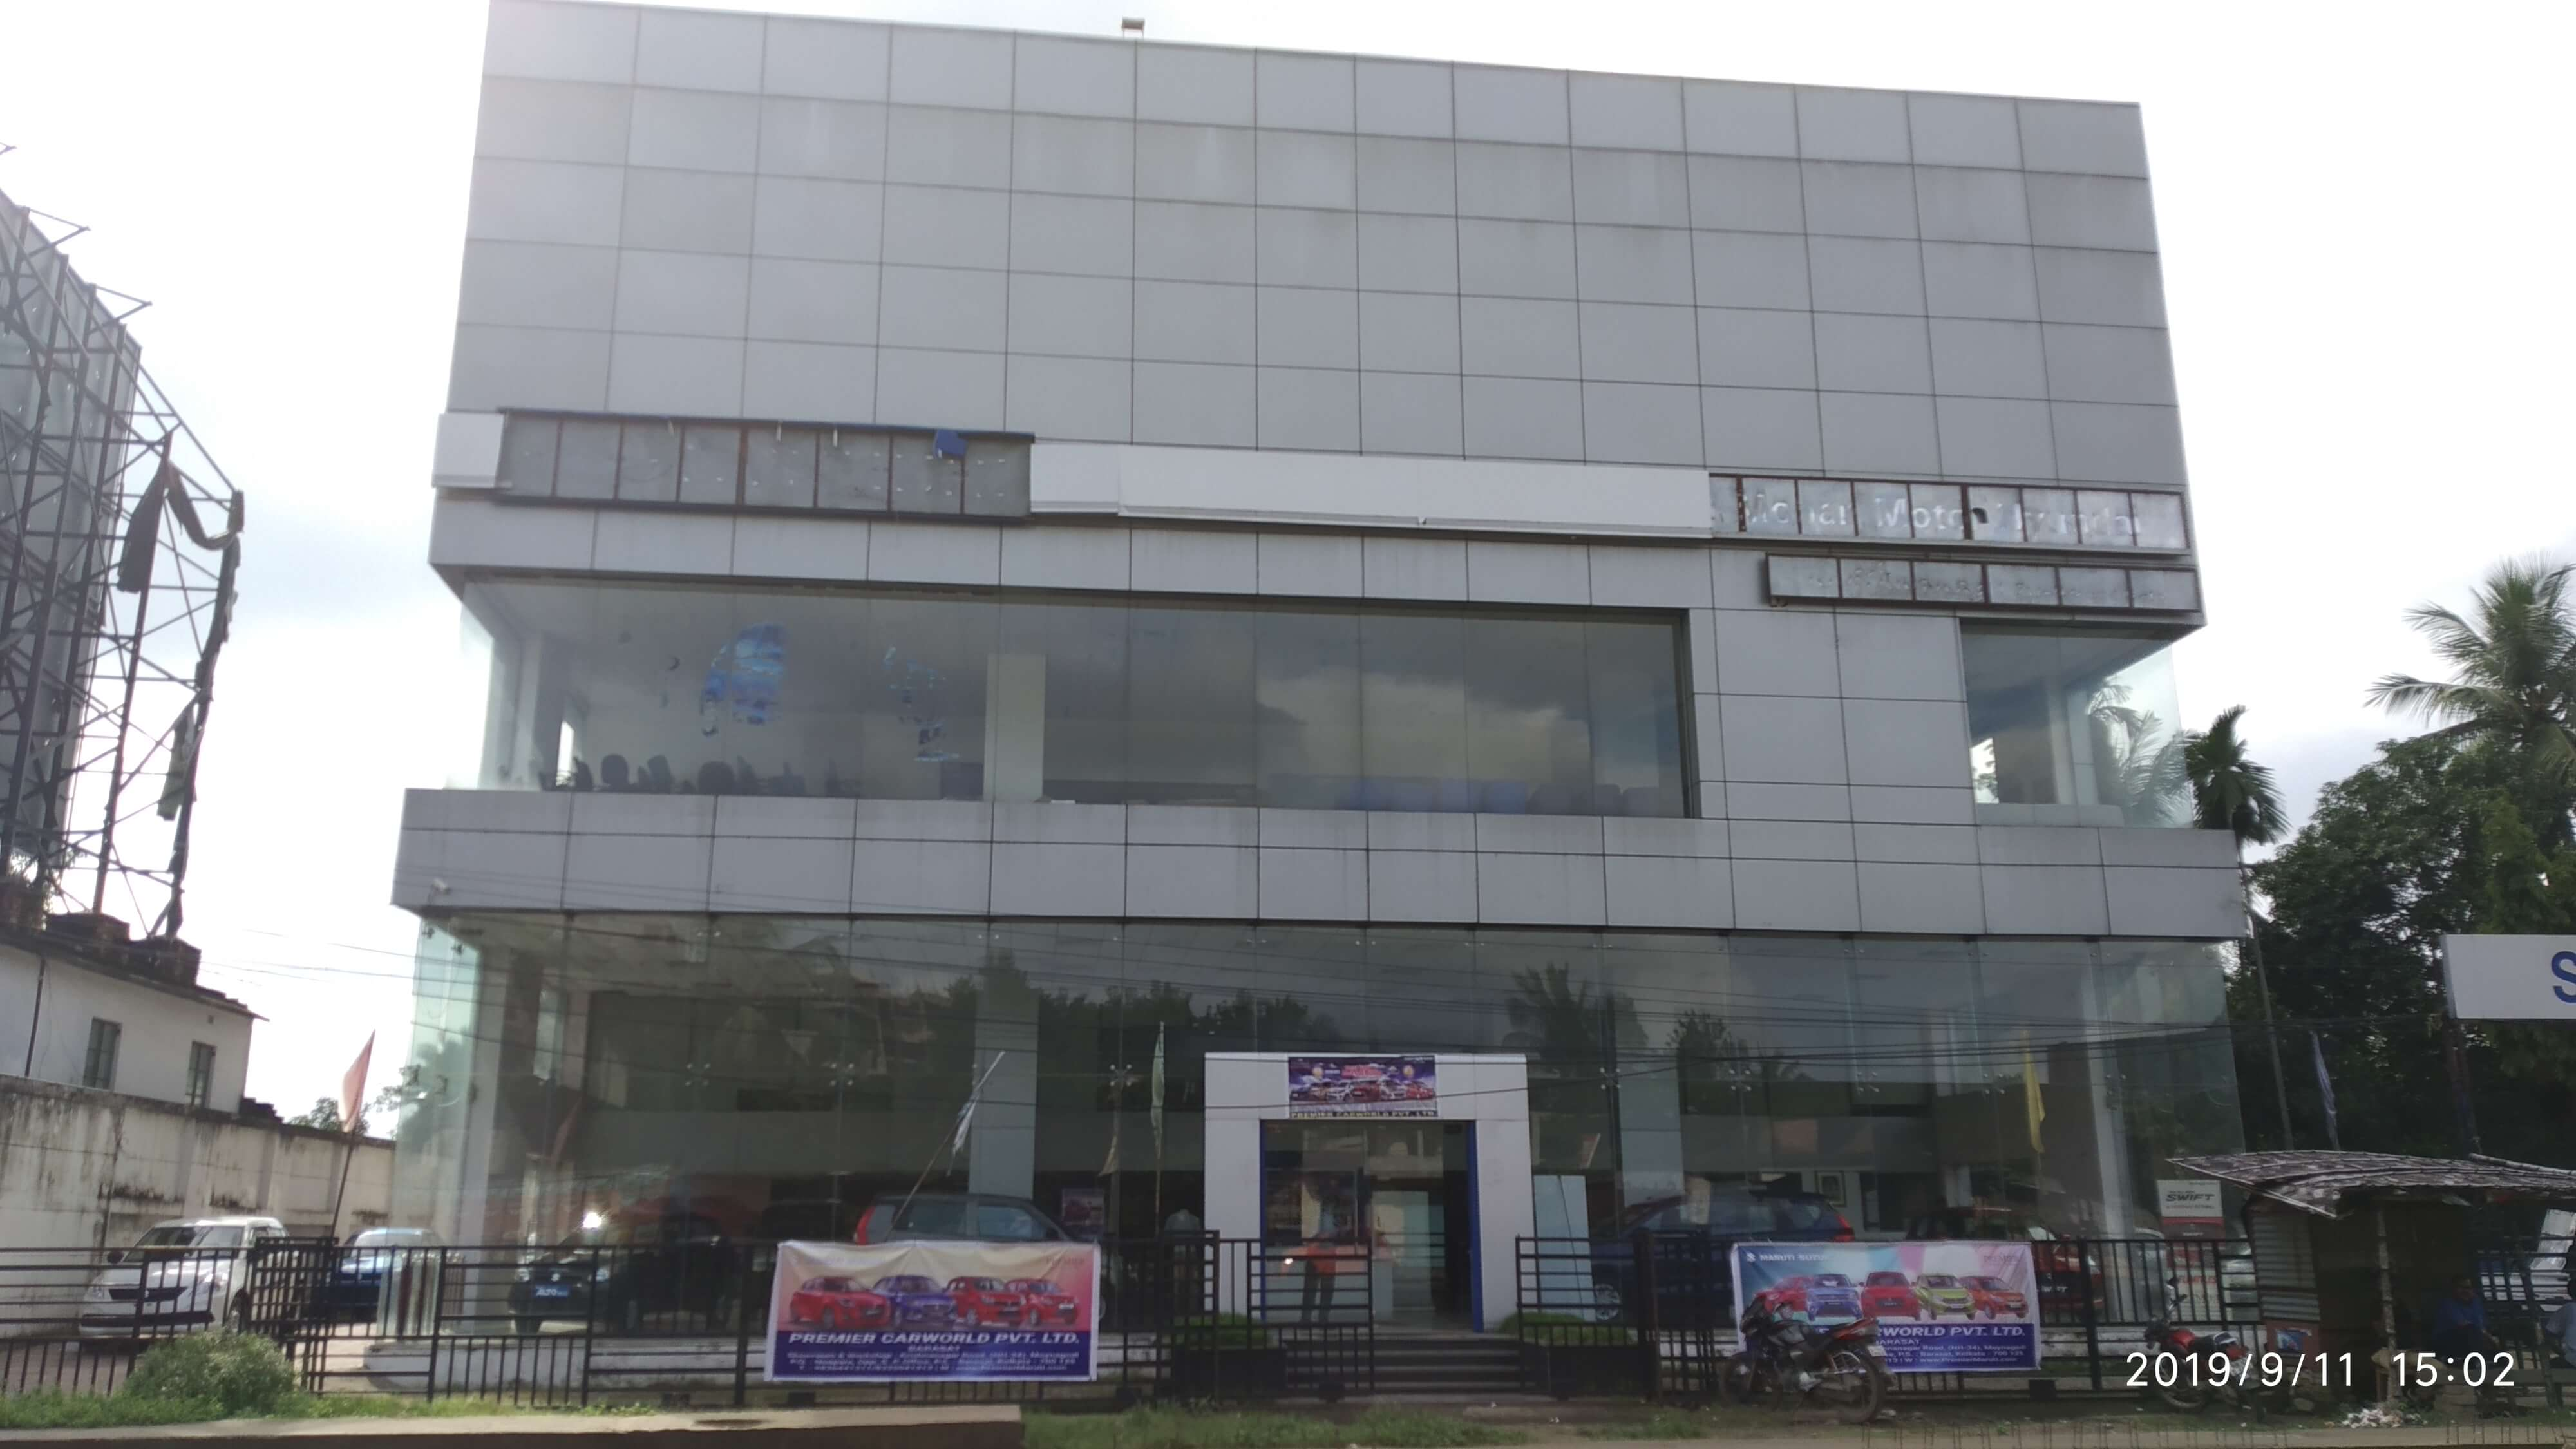 Premier Car World  Barasat, Kolkata AboutUs